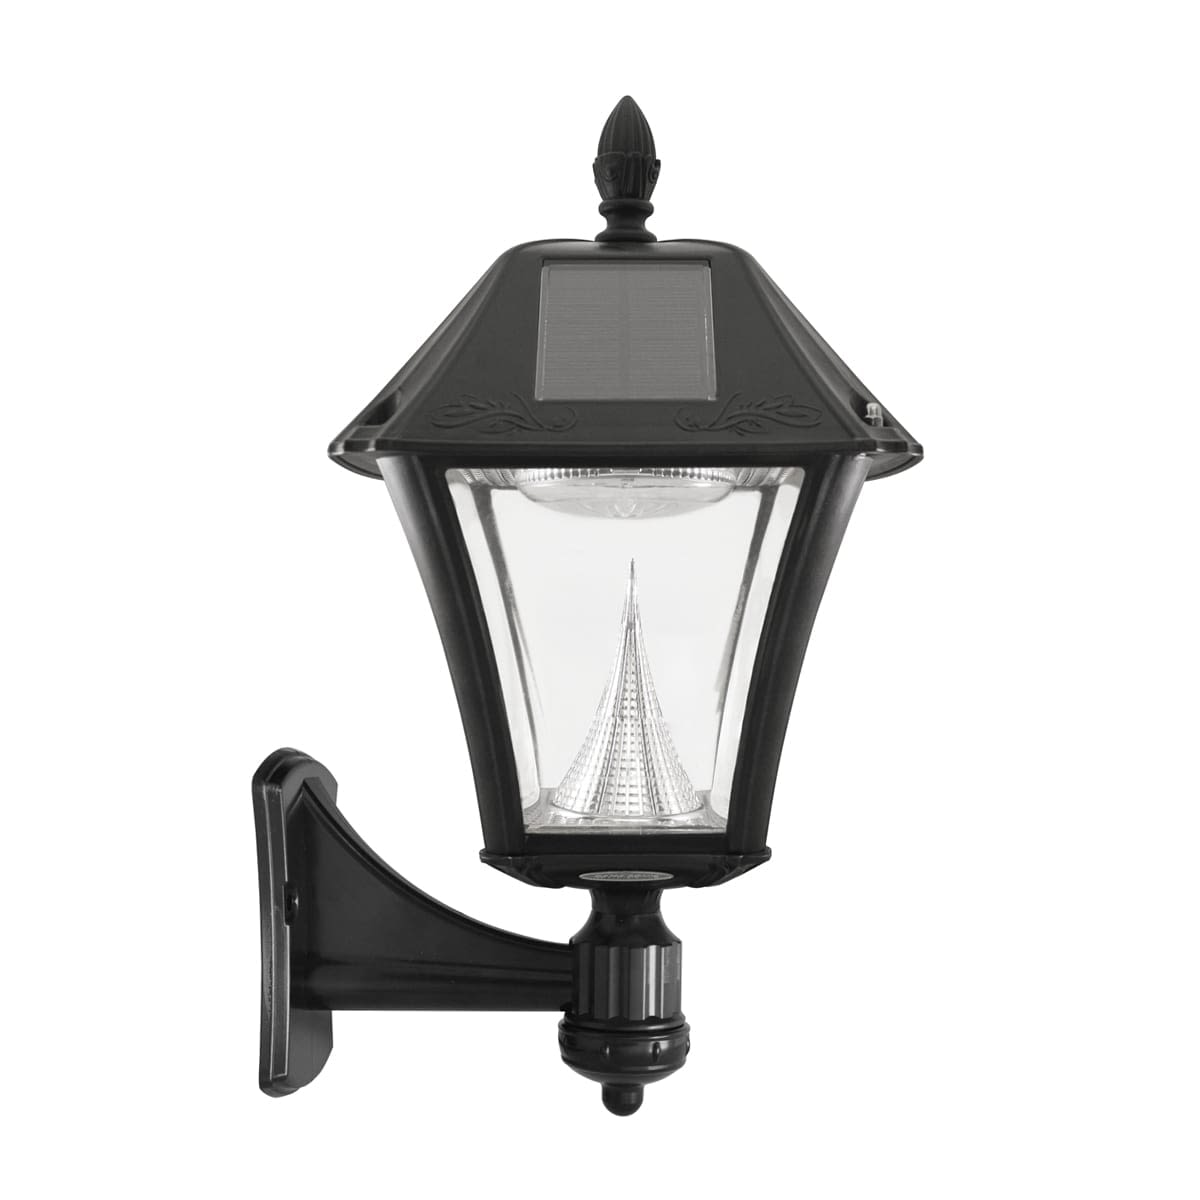 Baytown II Solar Lamp by Gama Sonic GS-105P